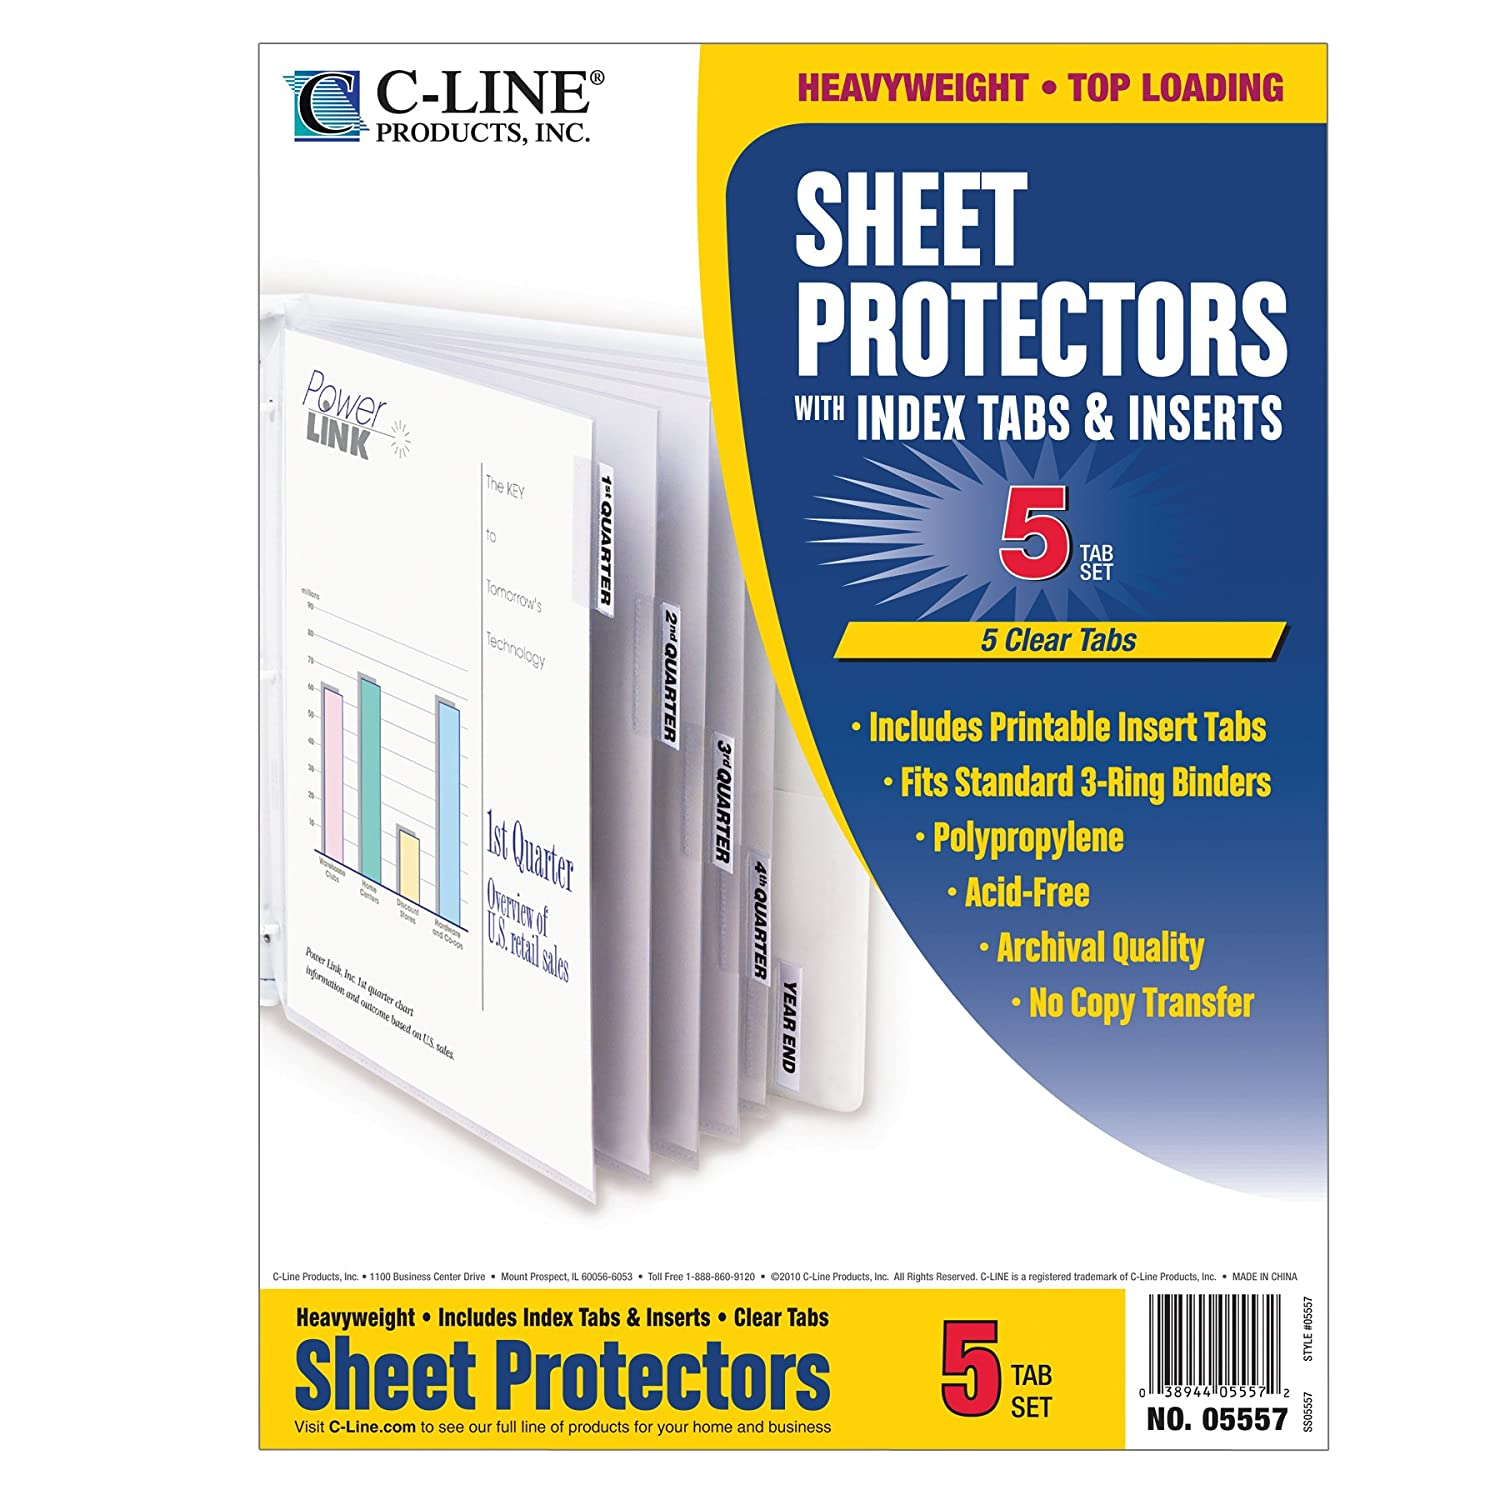 C-Line Polypropylene Sheet Protector with Index Tabs, Assorted Color Tabs, 11 x 8.5 Inches, One 8-Tab Set (05580) C-Line Products Inc.